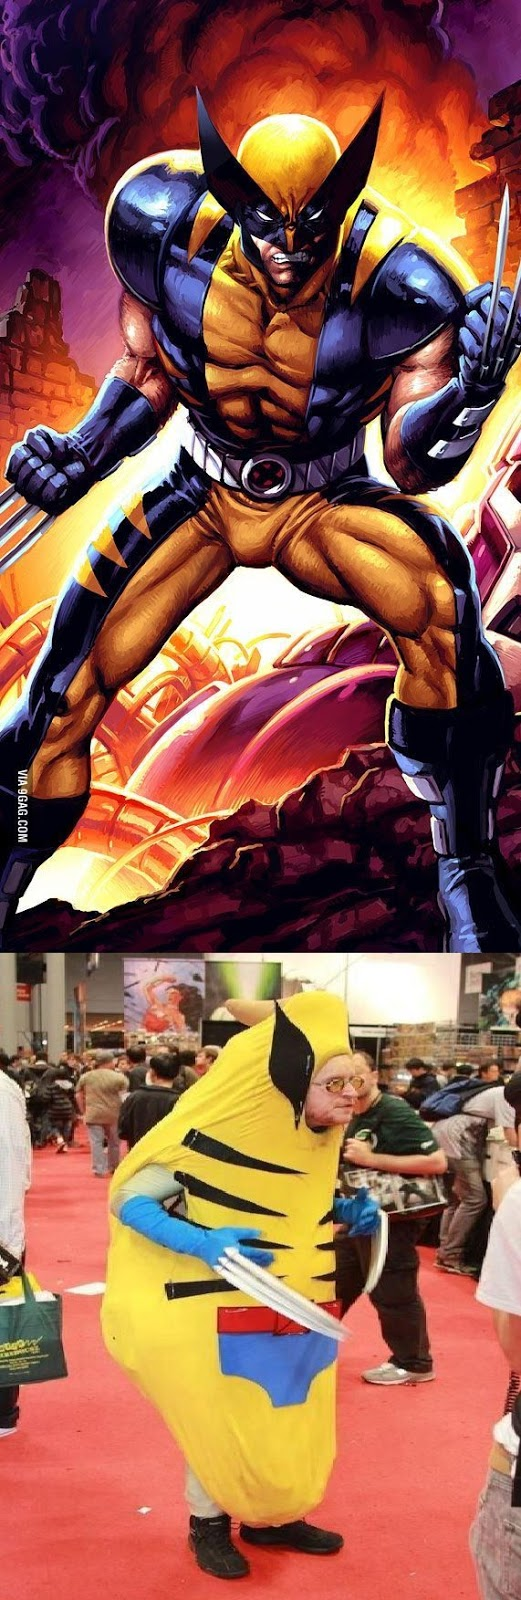 Wolverine cosplay.. Nailed it!.